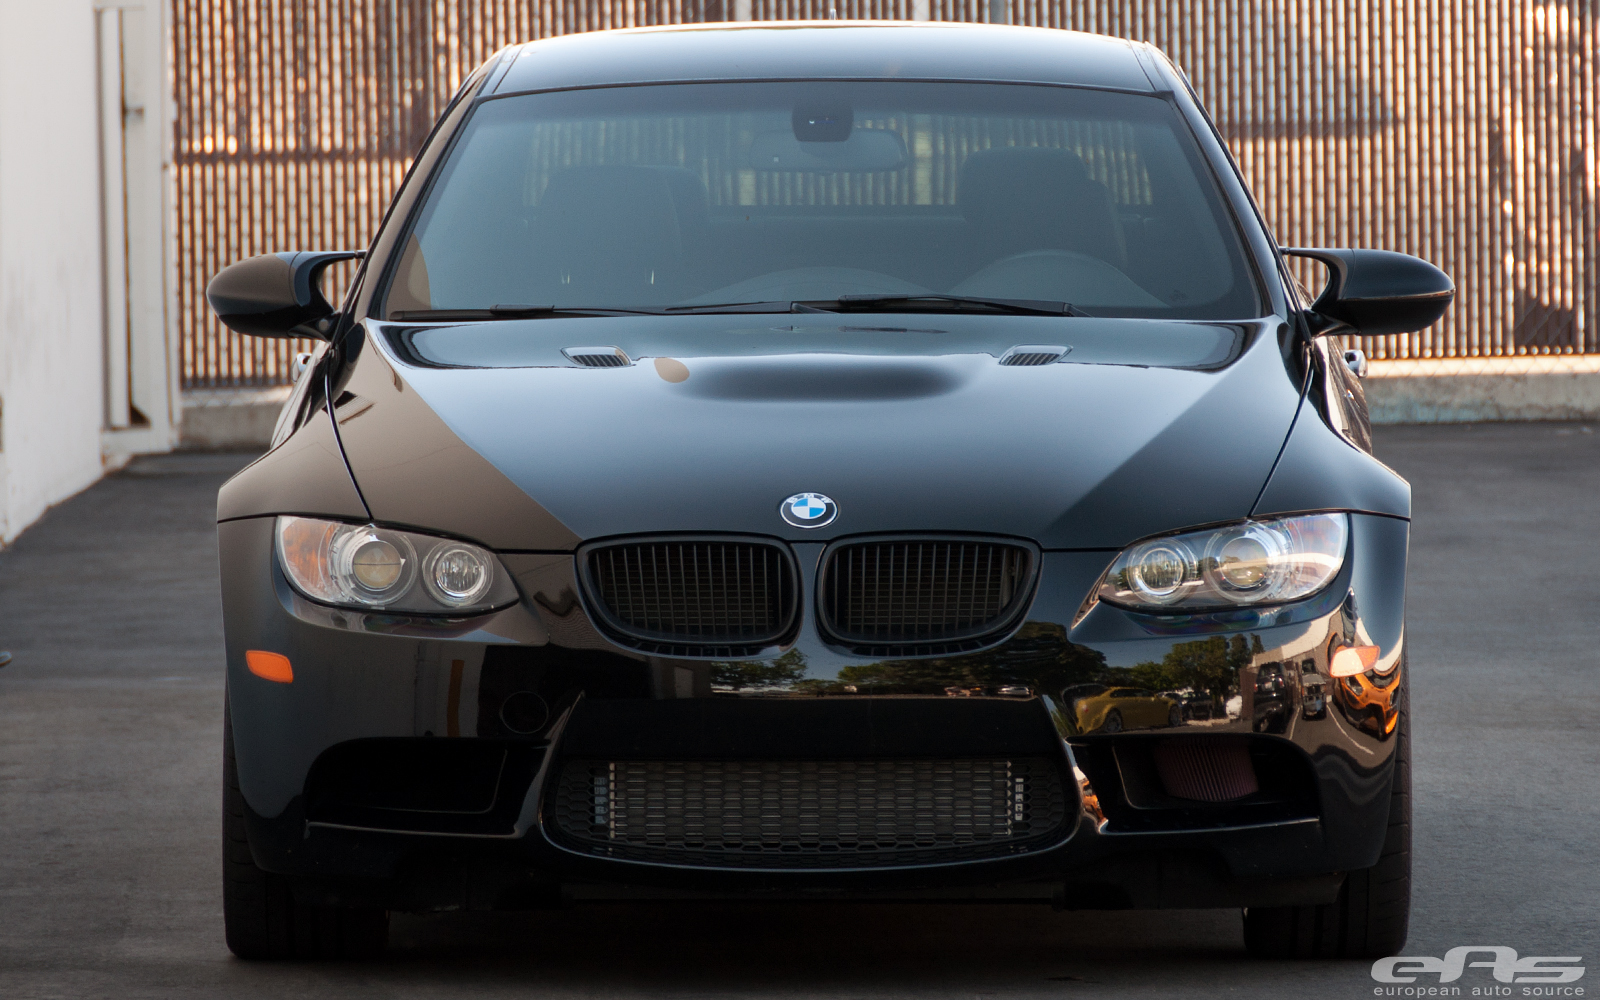 Inconspicuous Bwm M3 Has Ess Supercharger Autoevolution